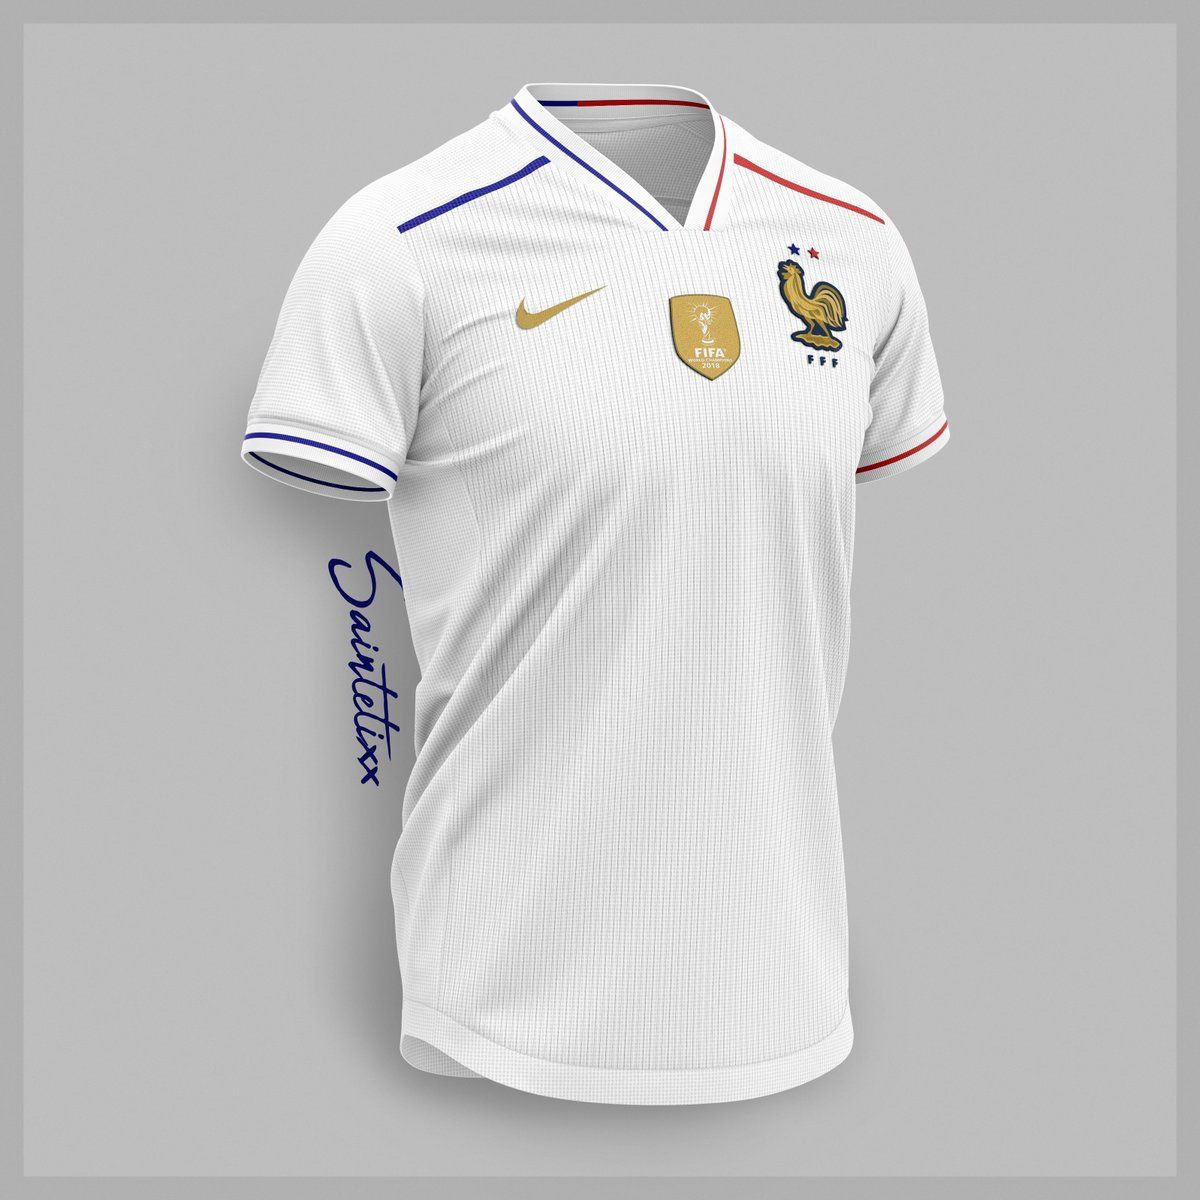 quality design 80a42 915ac Stunning Nike France 2019 Concept Kits By Saintetixx - Footy ...